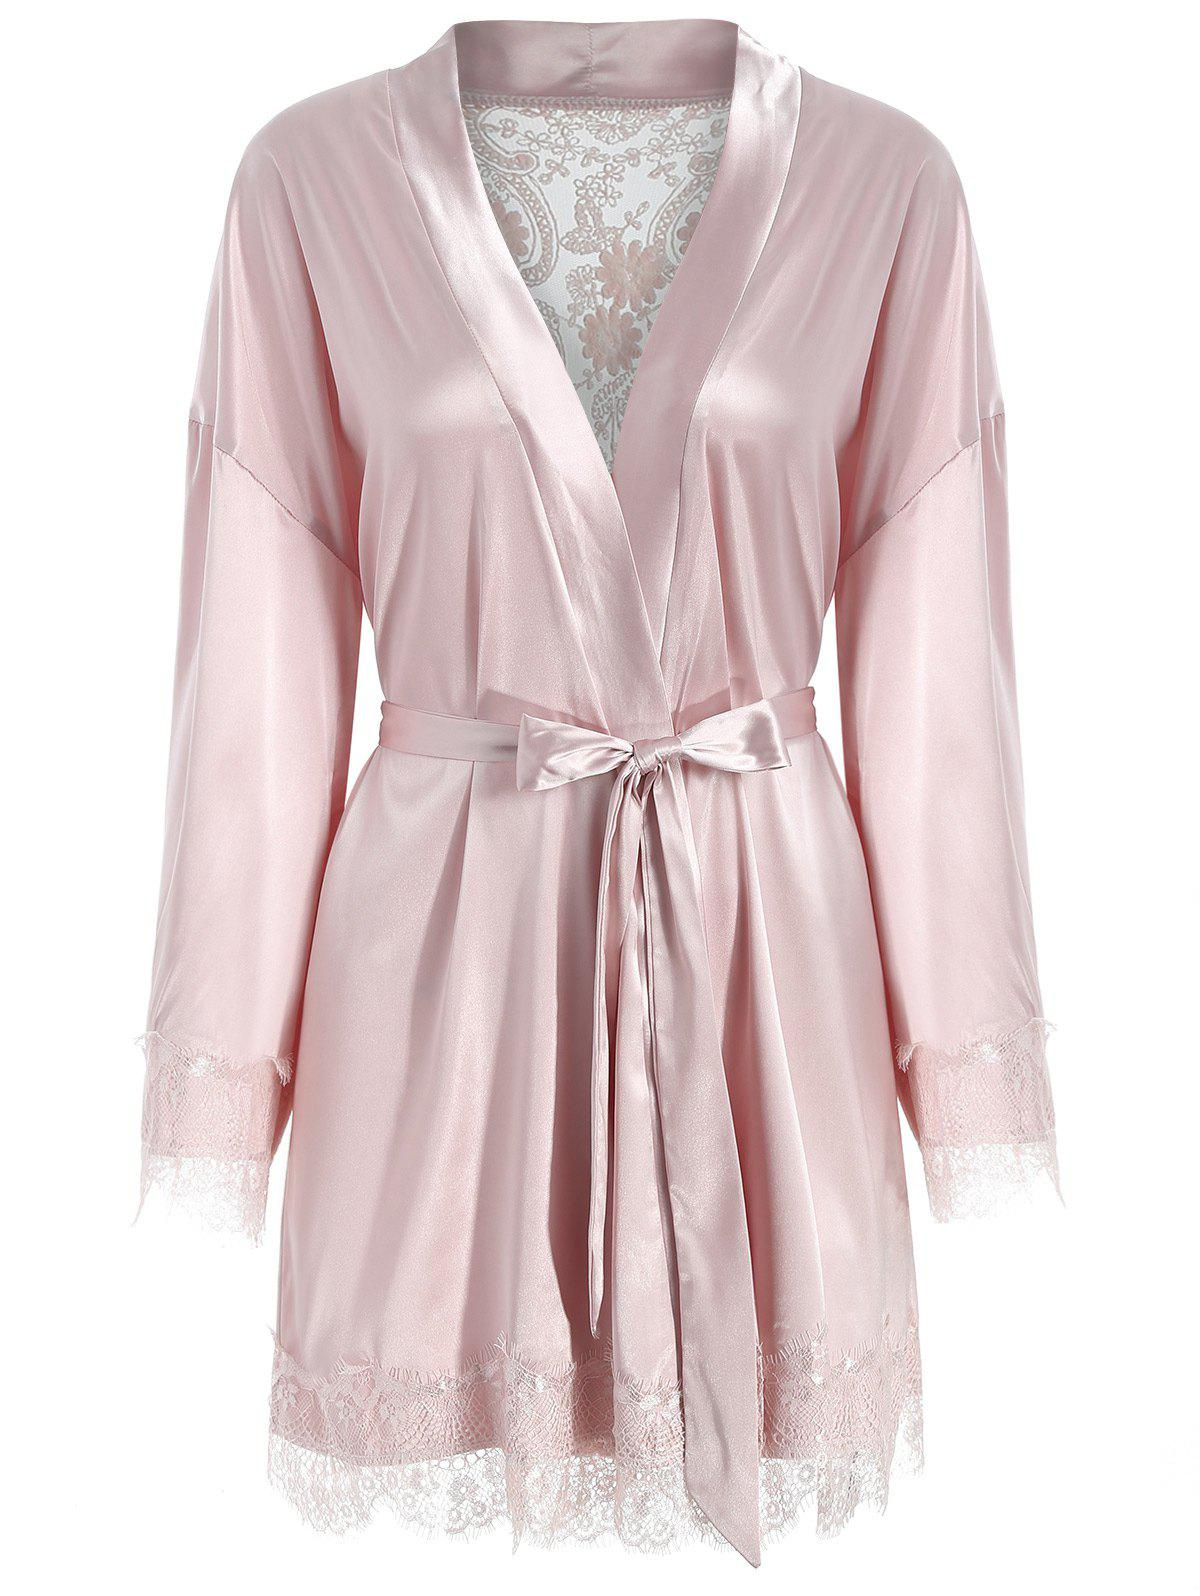 Trendy Belted Lace Panel Satin Sleeping Robe